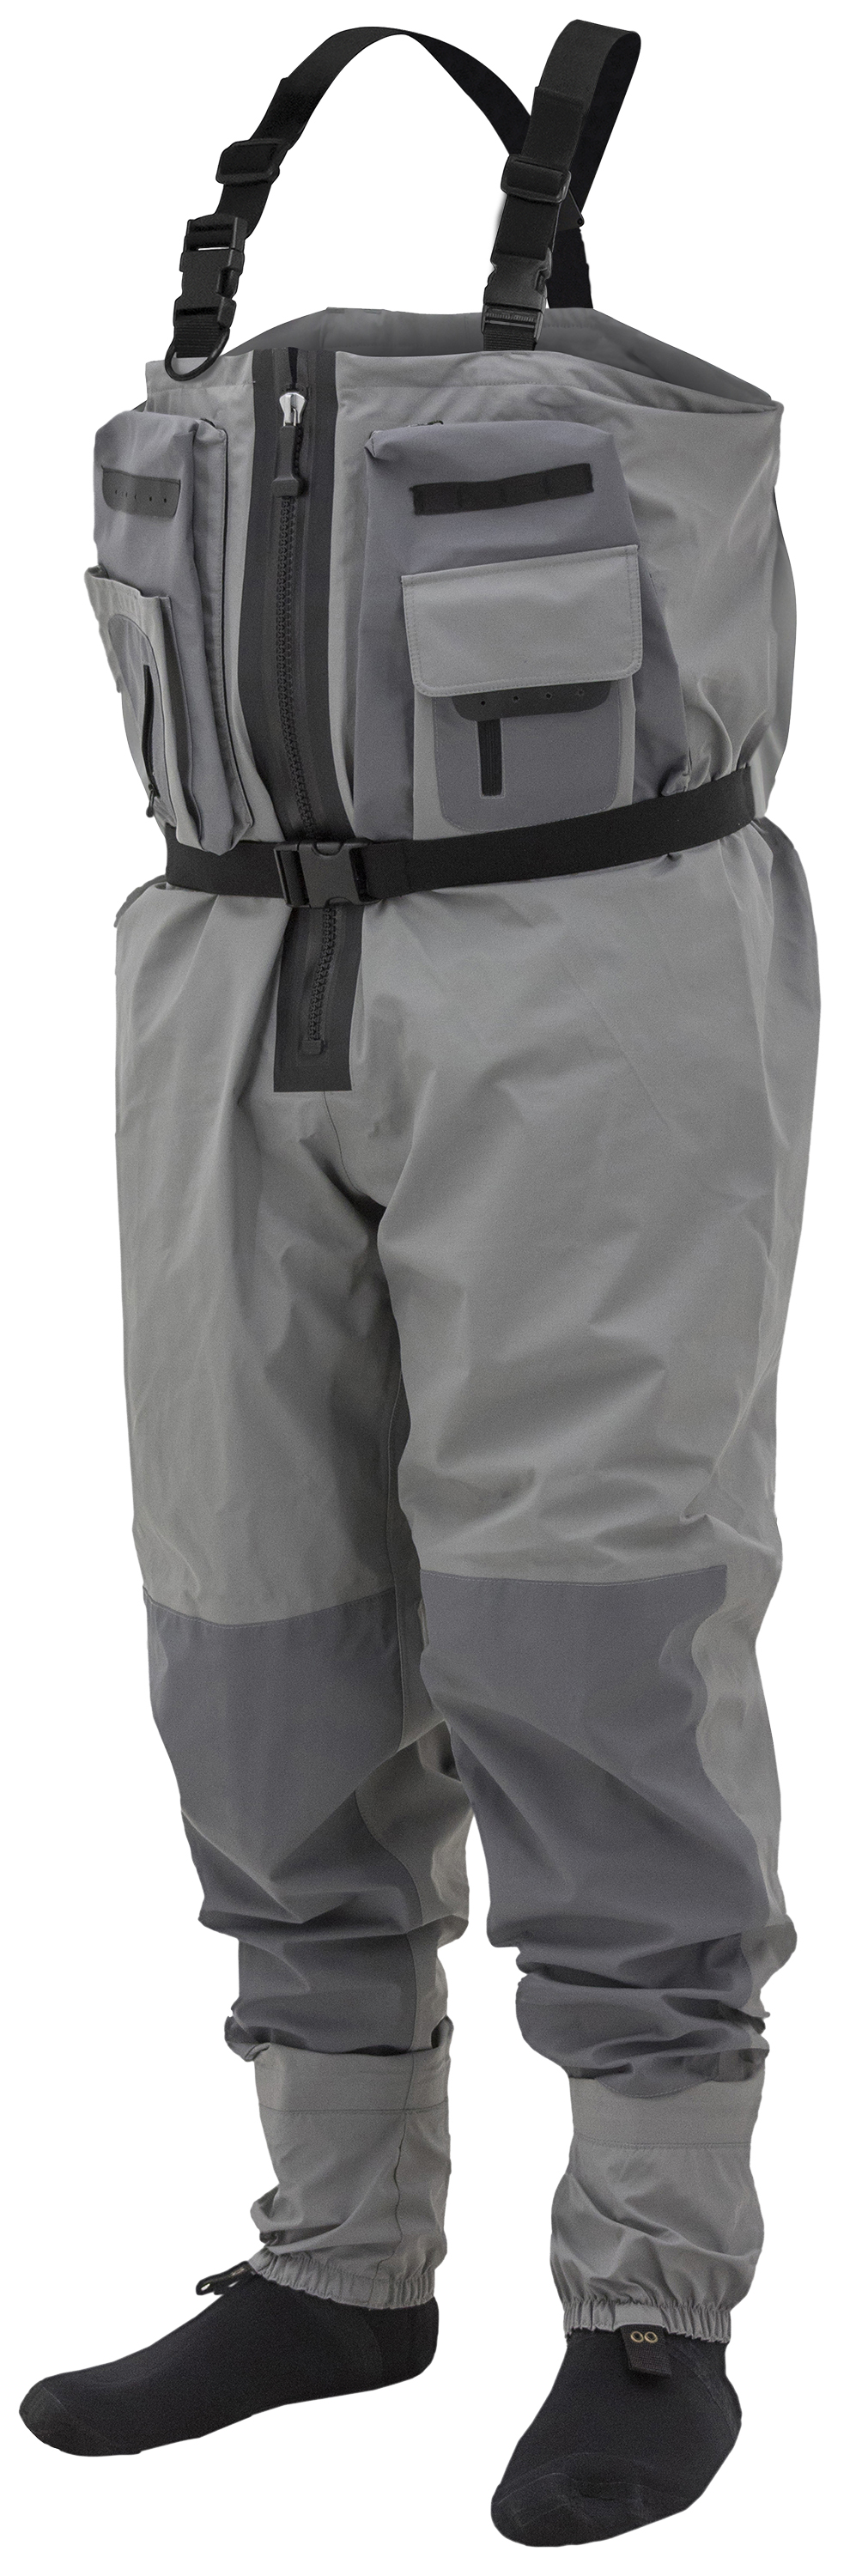 Sierran Transition Z Breathable Zip-front Wader by Frogg Toggs